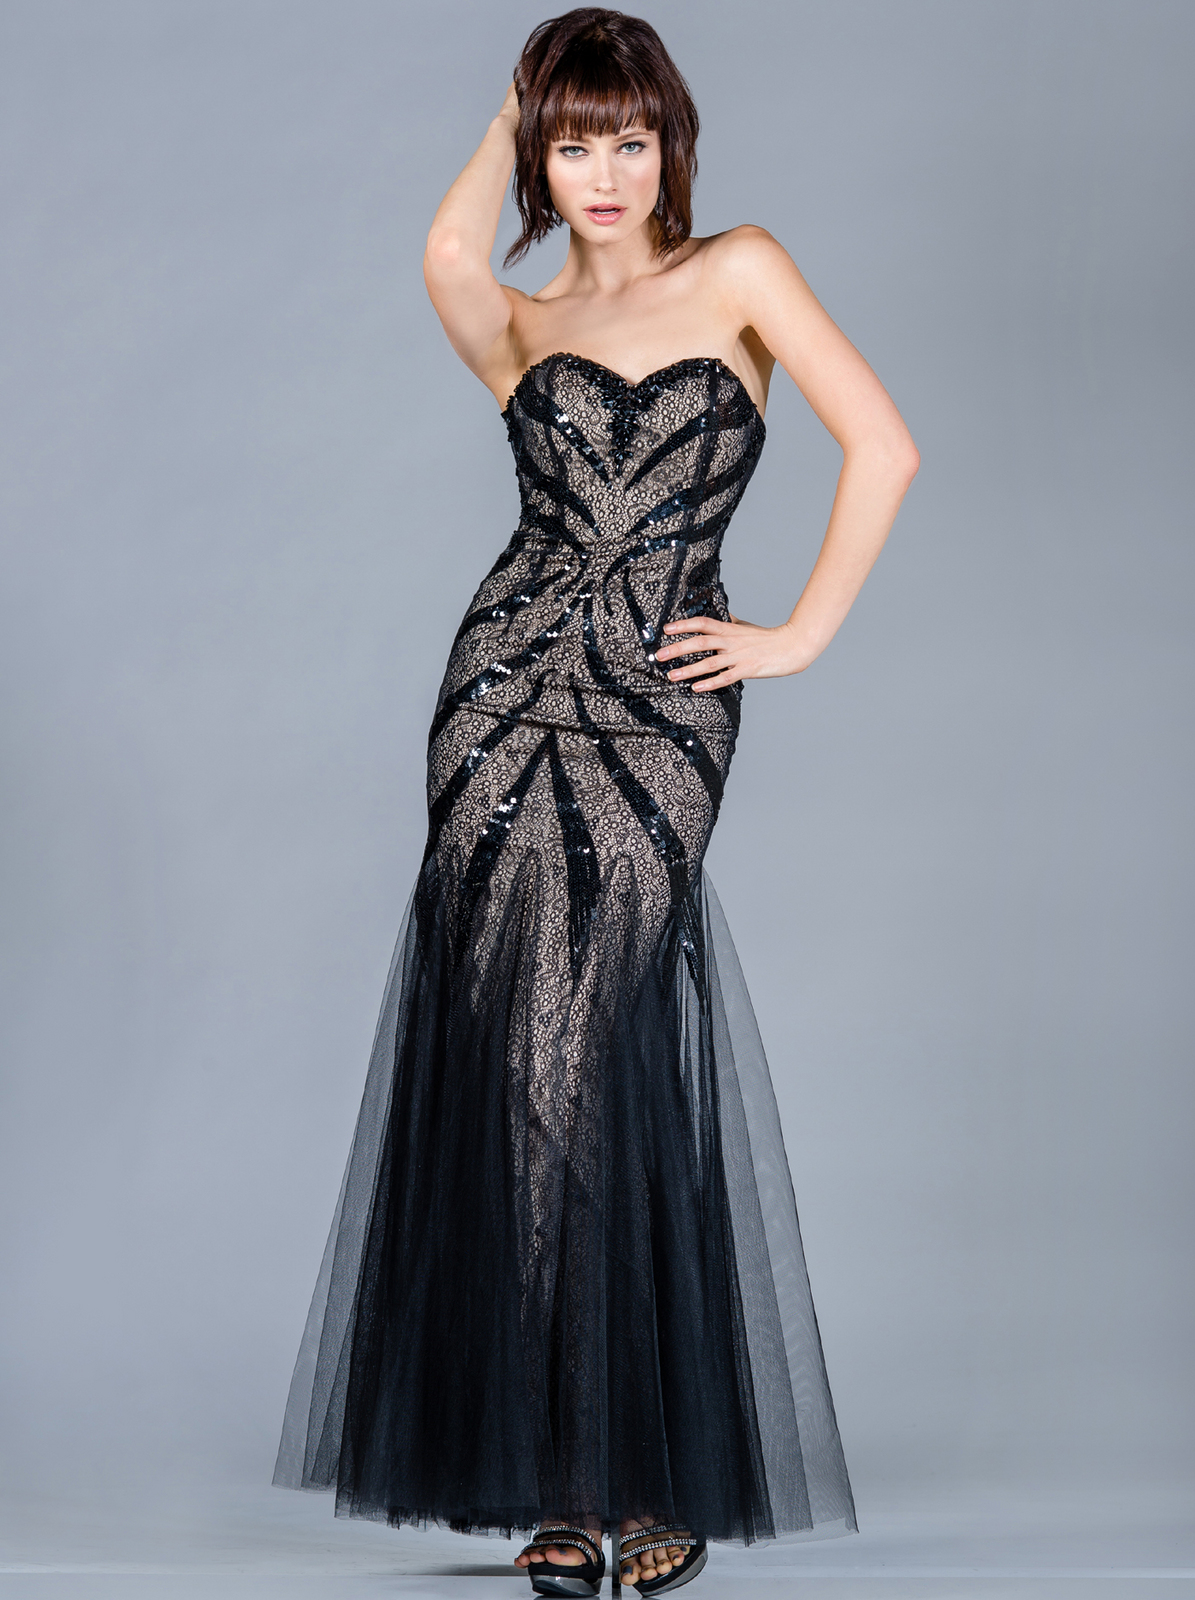 Sequin Decor Prom Dress | Sung Boutique L.A.